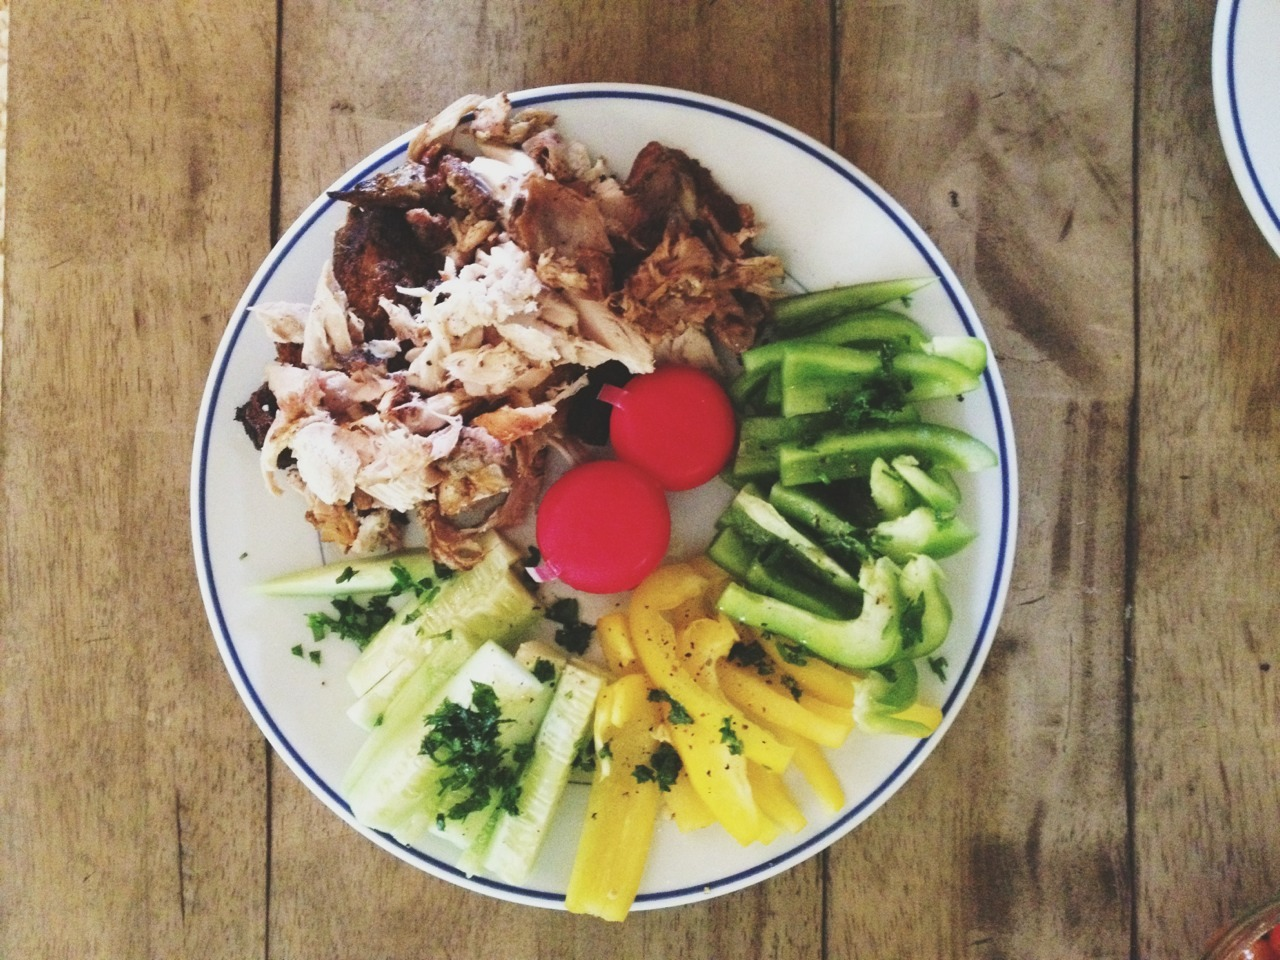 snack plate  chicken (rotisserie) chopped bell pepper cucumber parsley cheese  olive oil, salt, pepper not pictured: grape tomatoes, pickles, chips